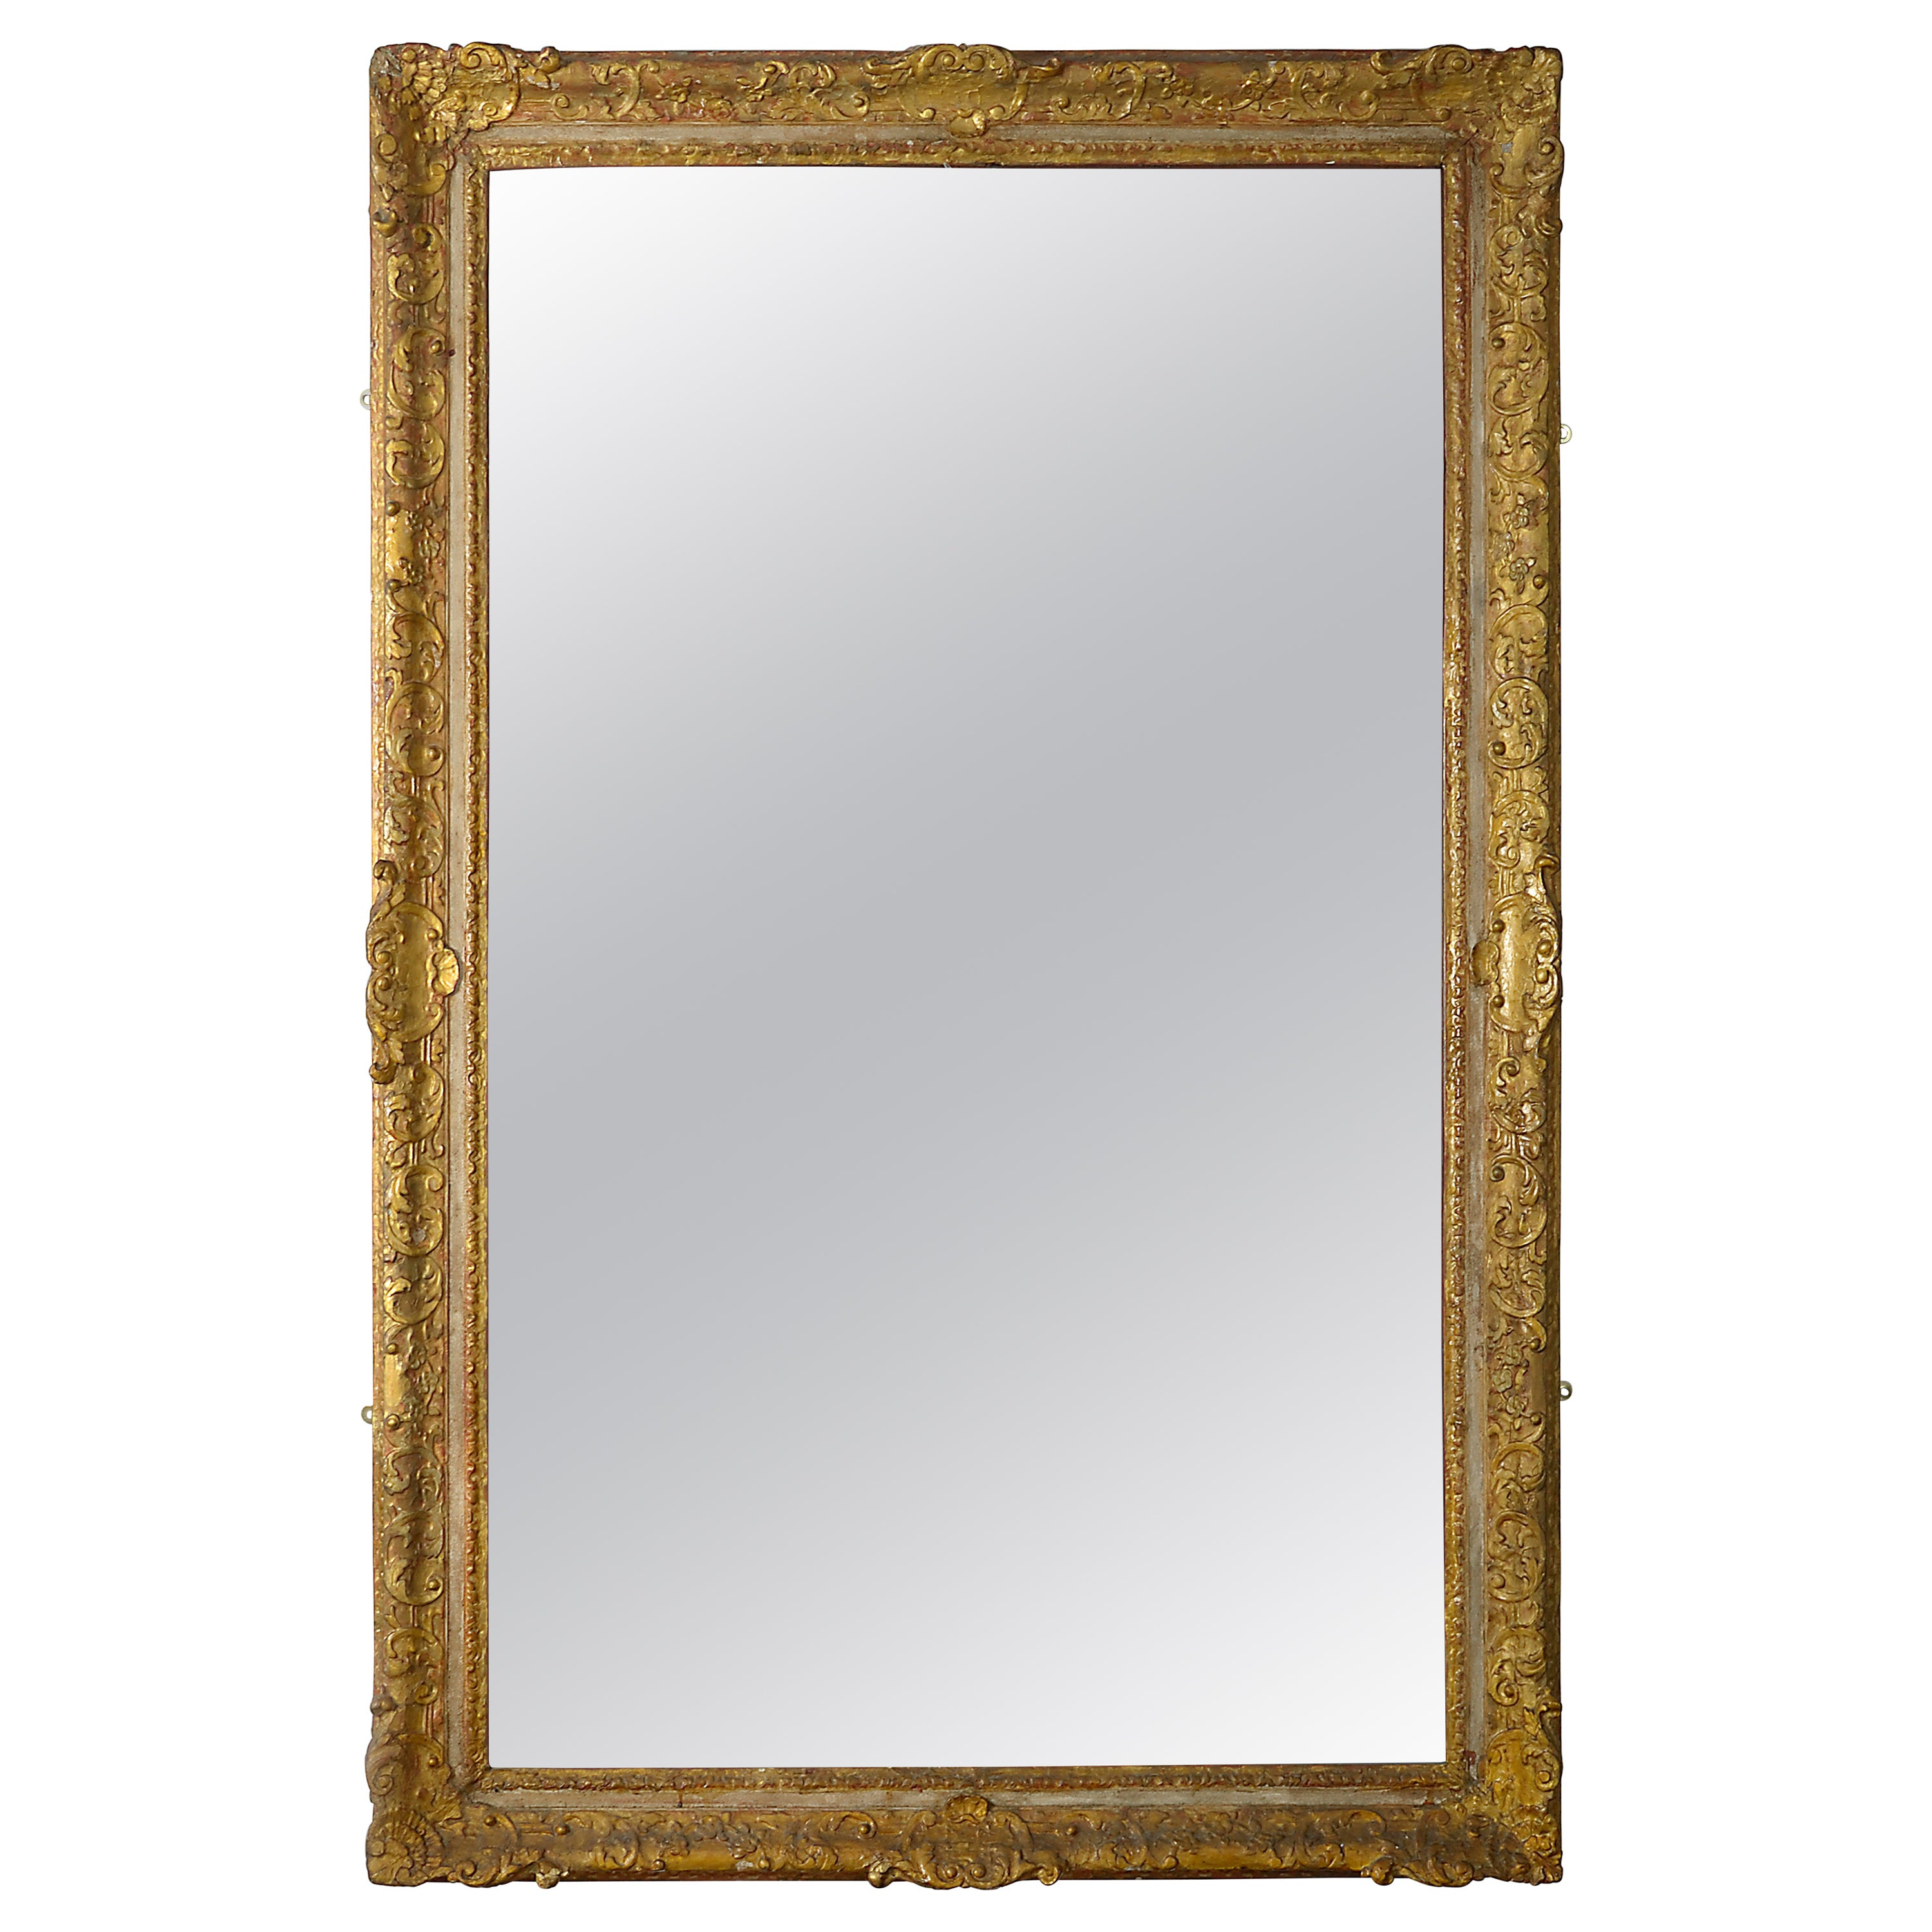 Early 18th Century Regence Period Giltwood Mirror